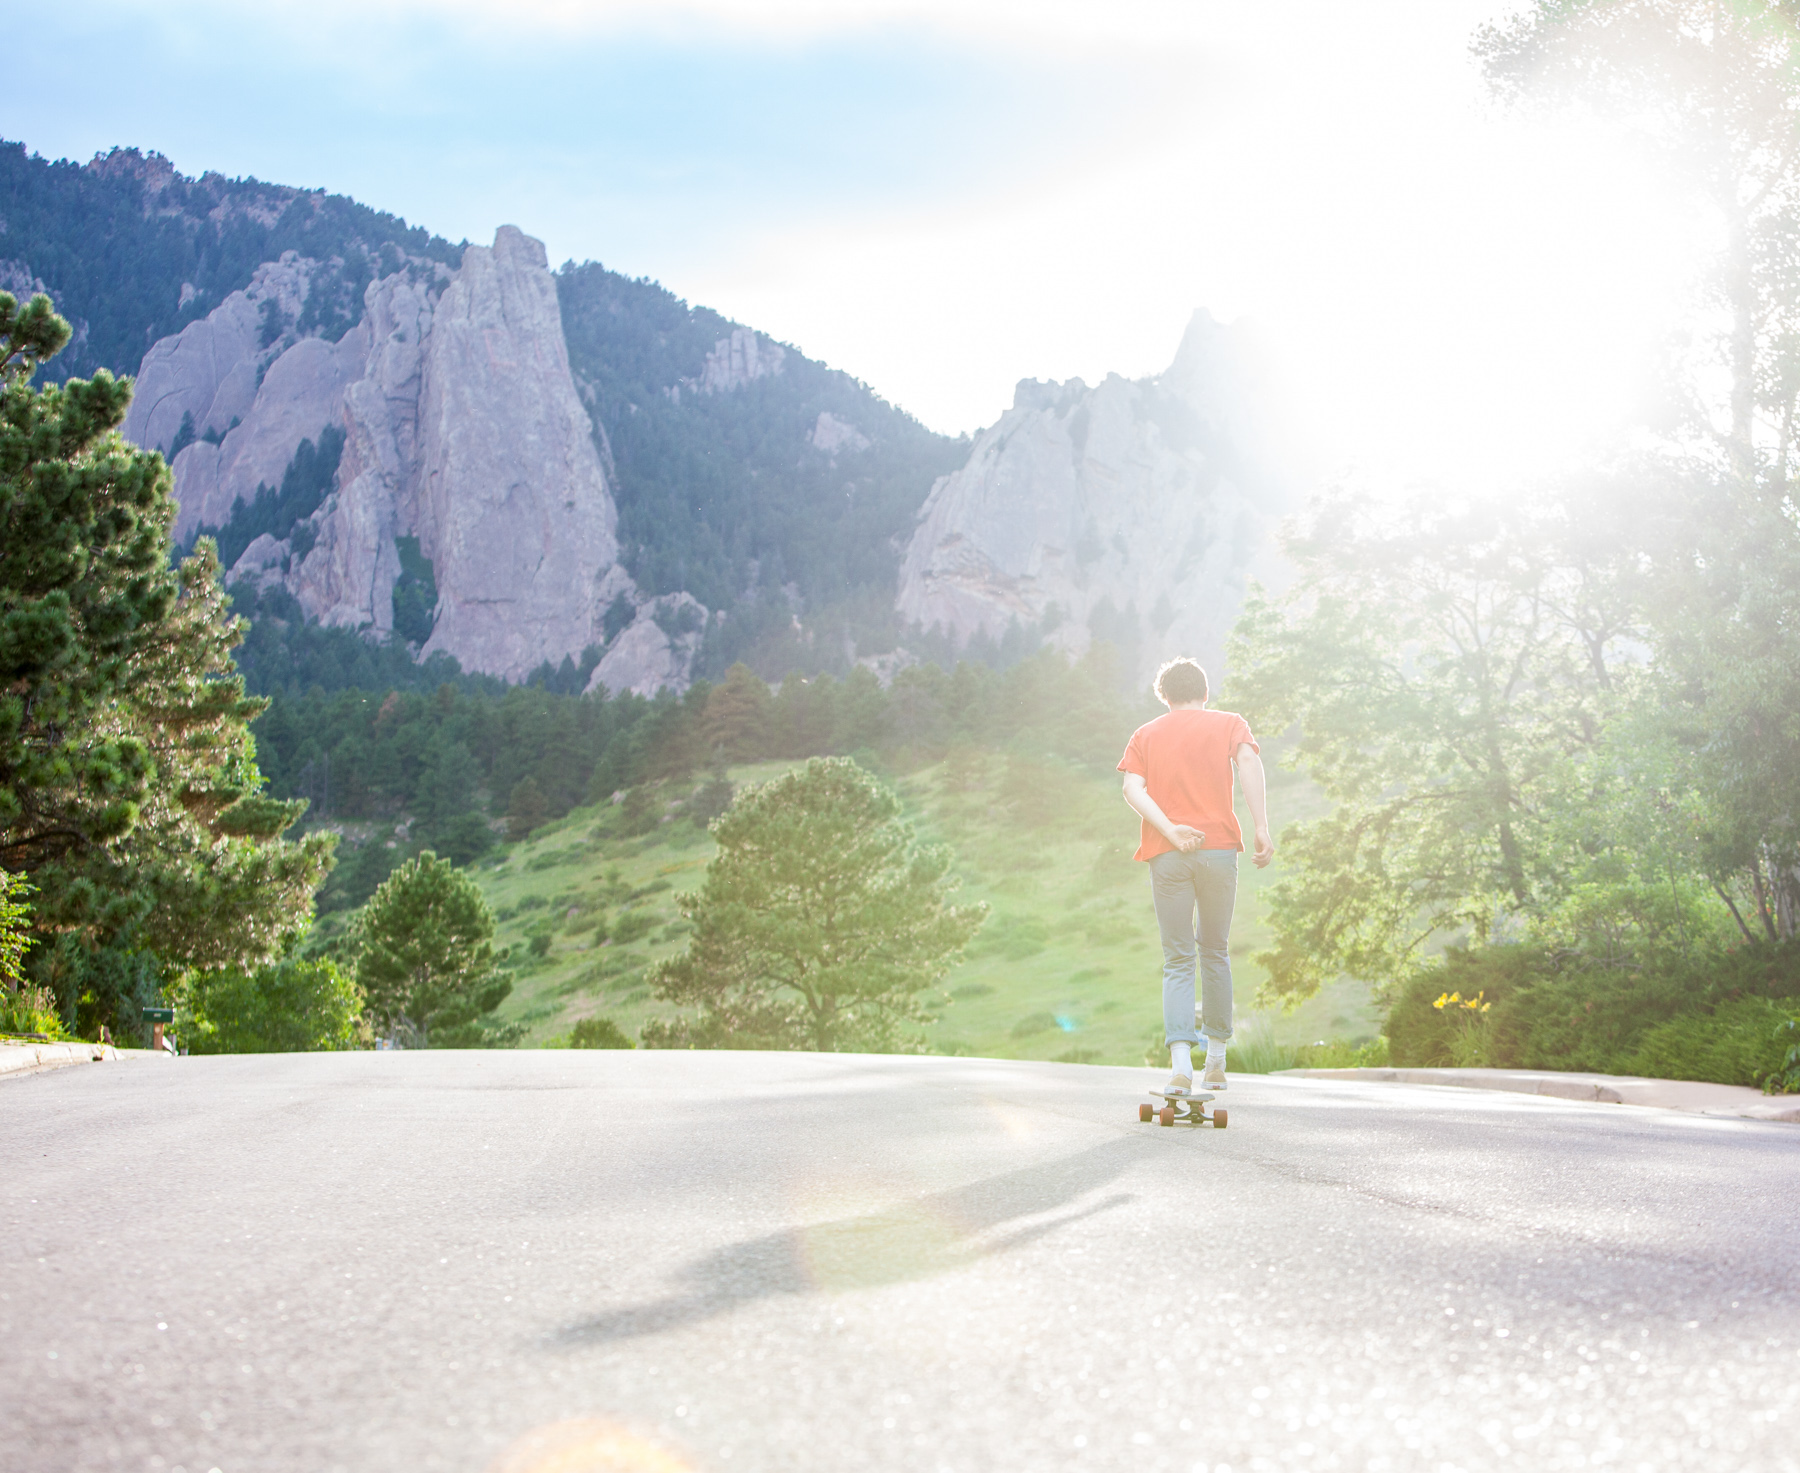 Lifestyle photo of guy skateboarding uphill with Flatirons mountains behind in Boulder, Colorado.